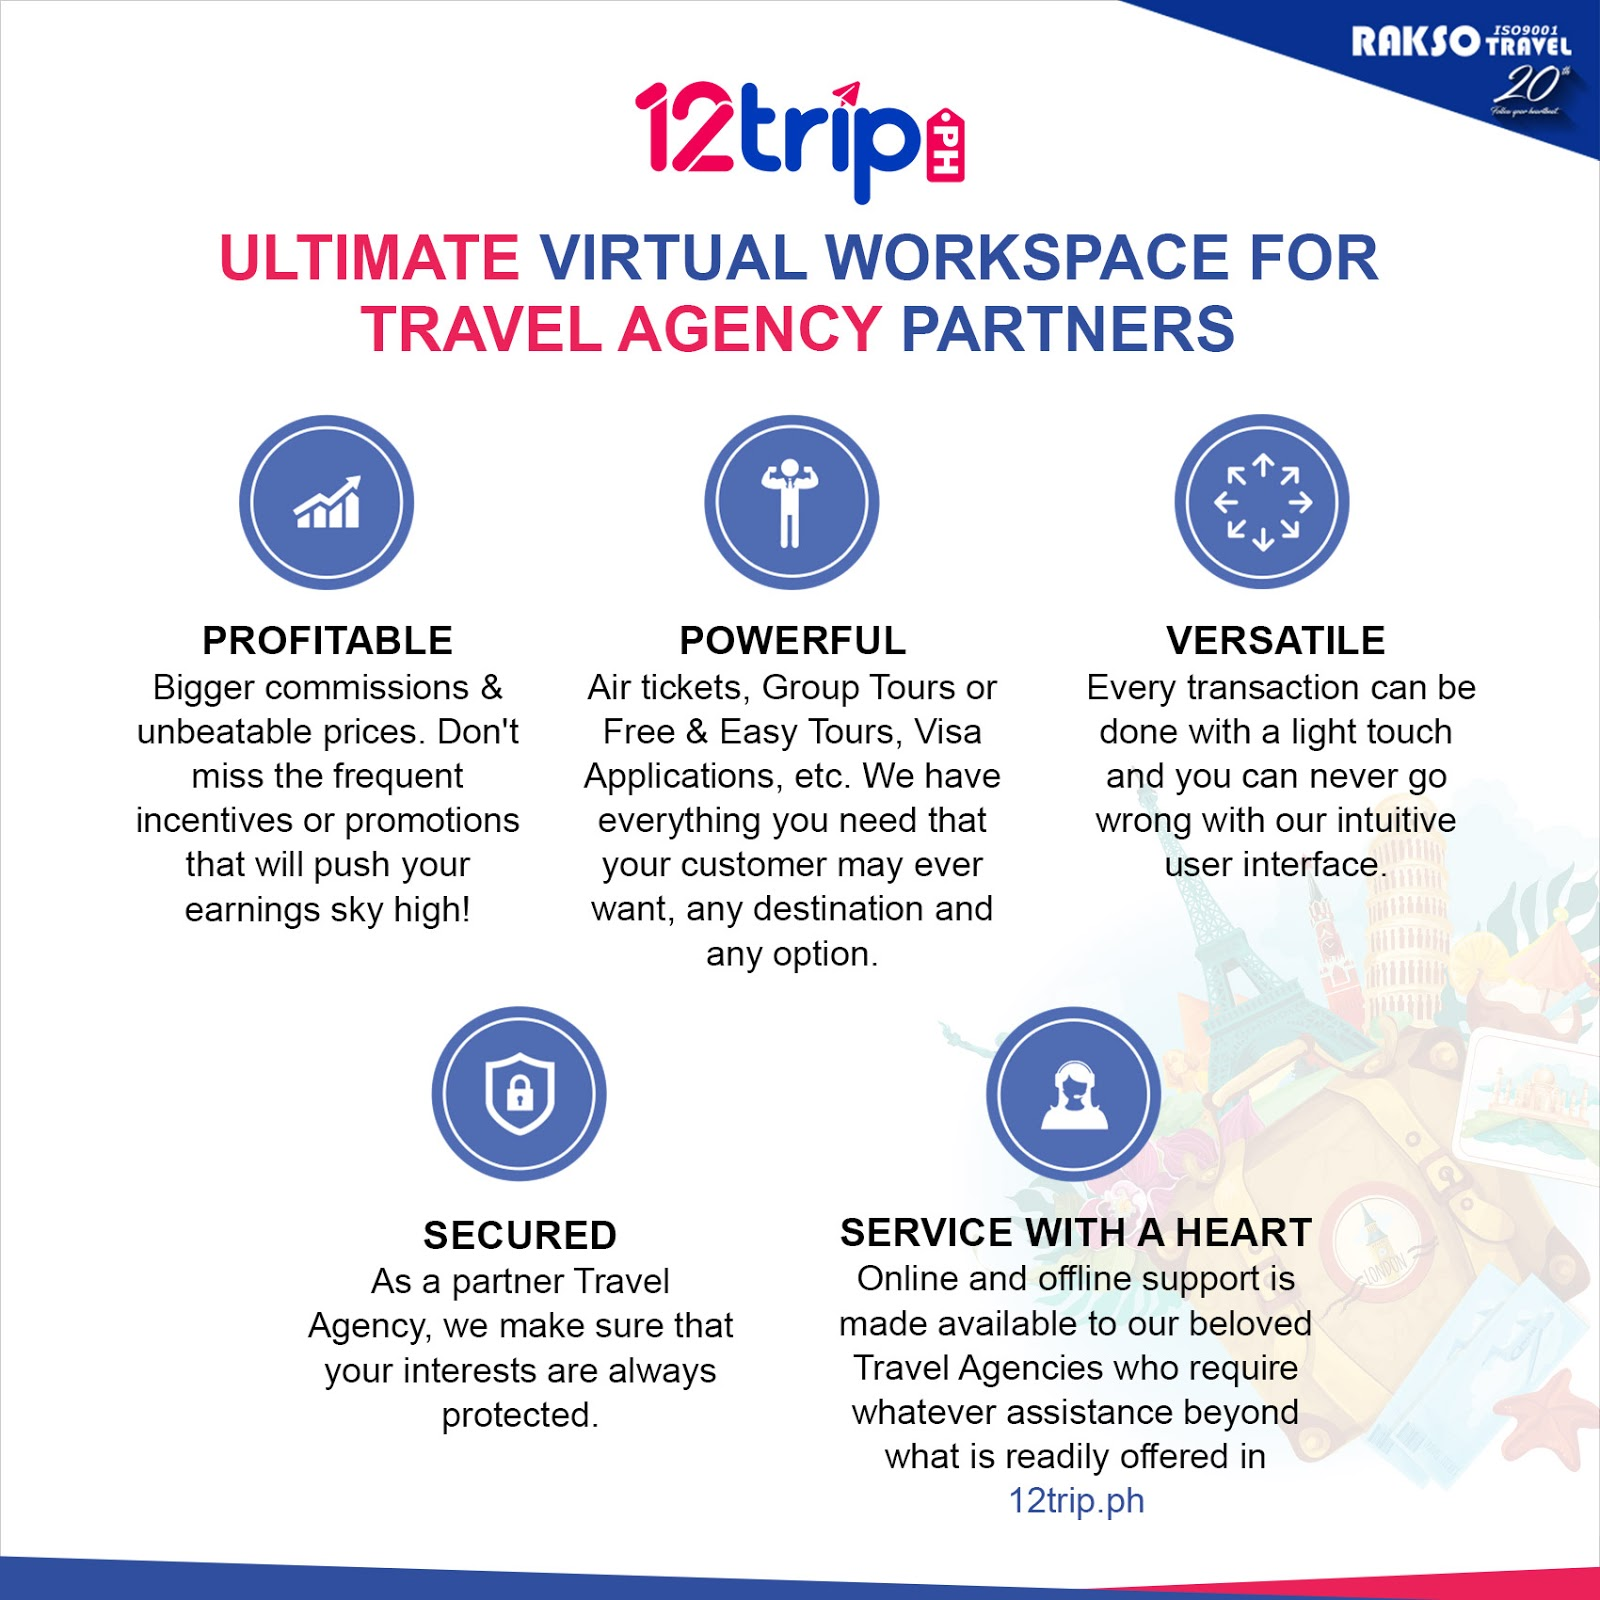 Rakso Travel launched B2B Online Workspace, 12trip ph for Trade